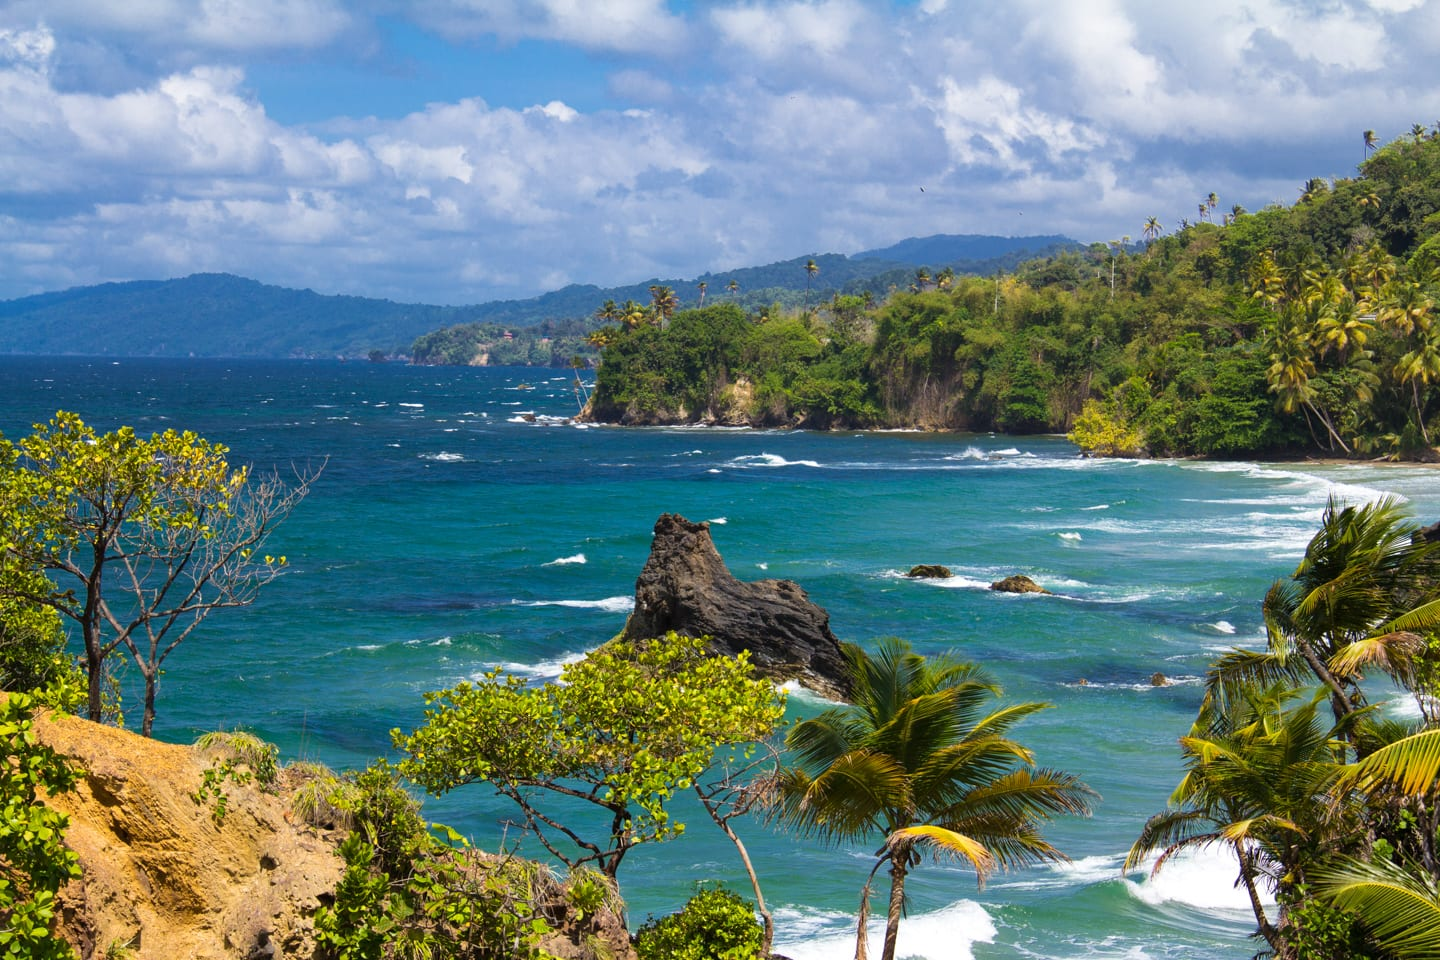 New York to Trinidad/Tobago $290 RT Airfares on American Airlines Main Cabin (Travel September - February 2022)